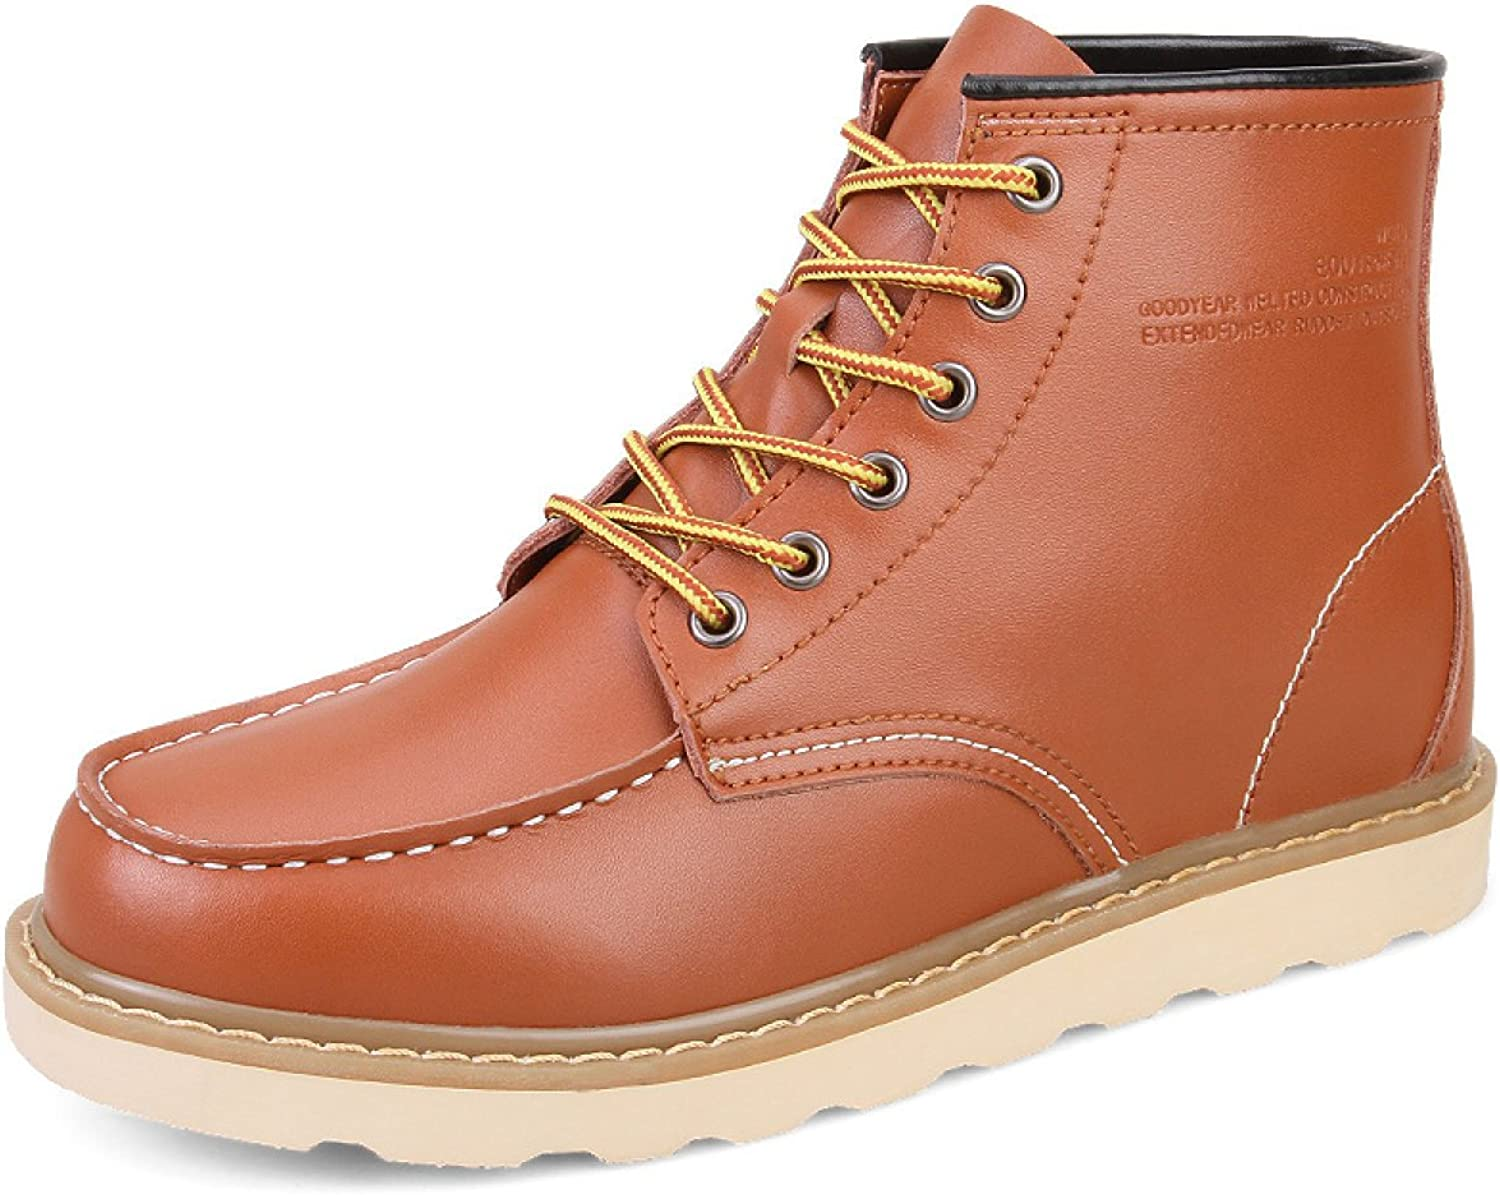 Autumn And Winter Boots Men Leather Tooling Boots High-top Casual shoes Increased Within The Men's shoes